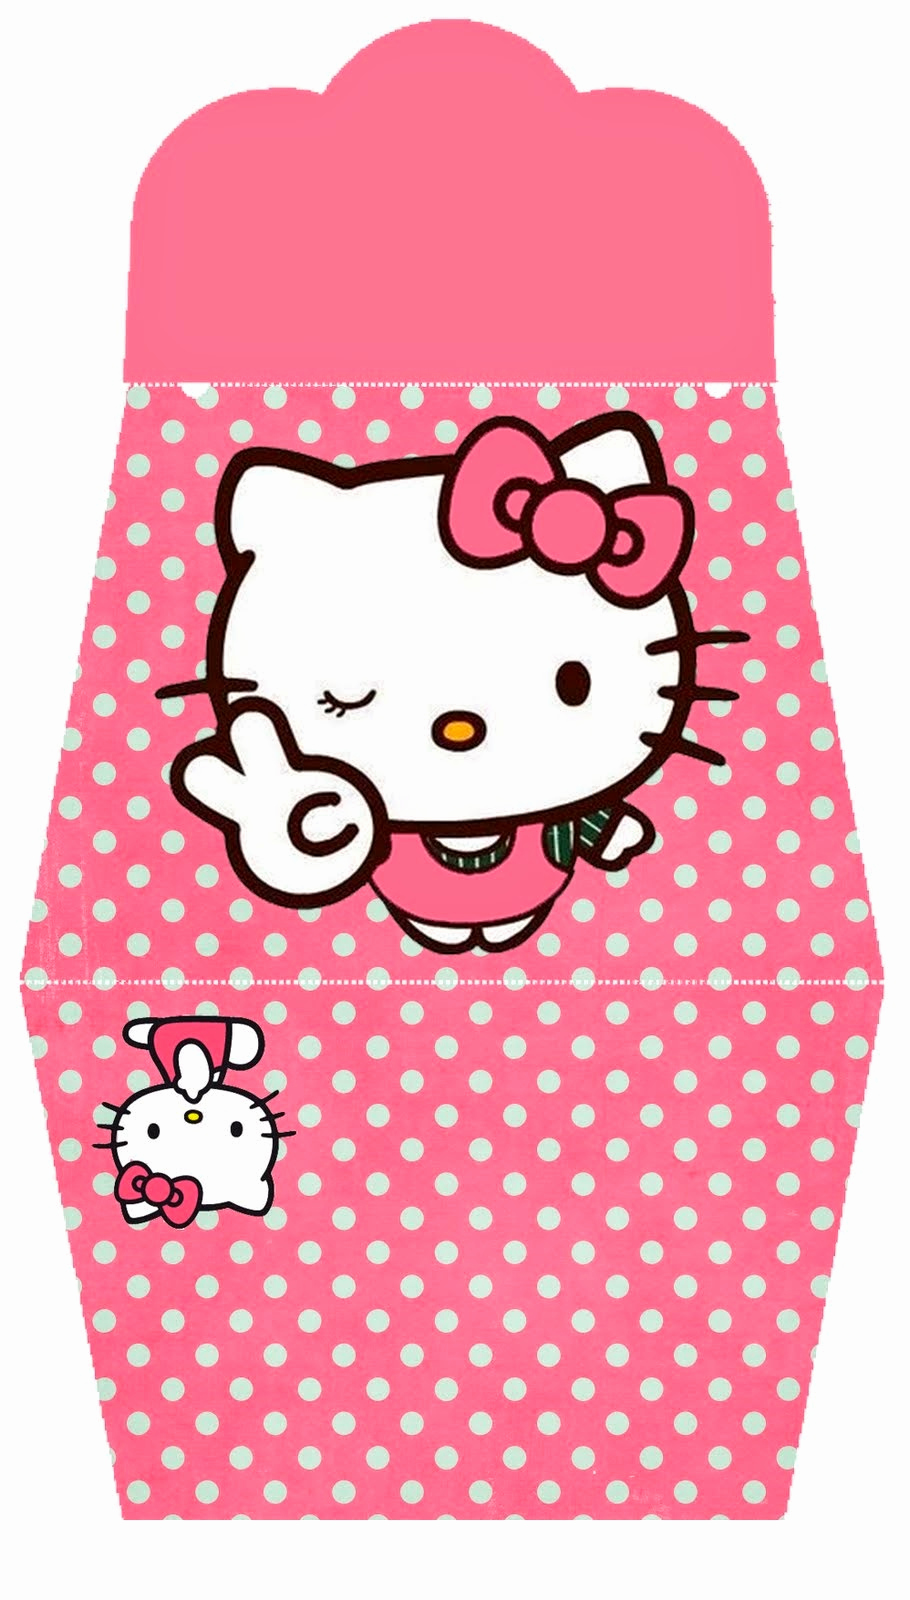 Hello Kitty Printable Invitation Fresh Hello Kitty In Pink Free Printable Purse Invitations